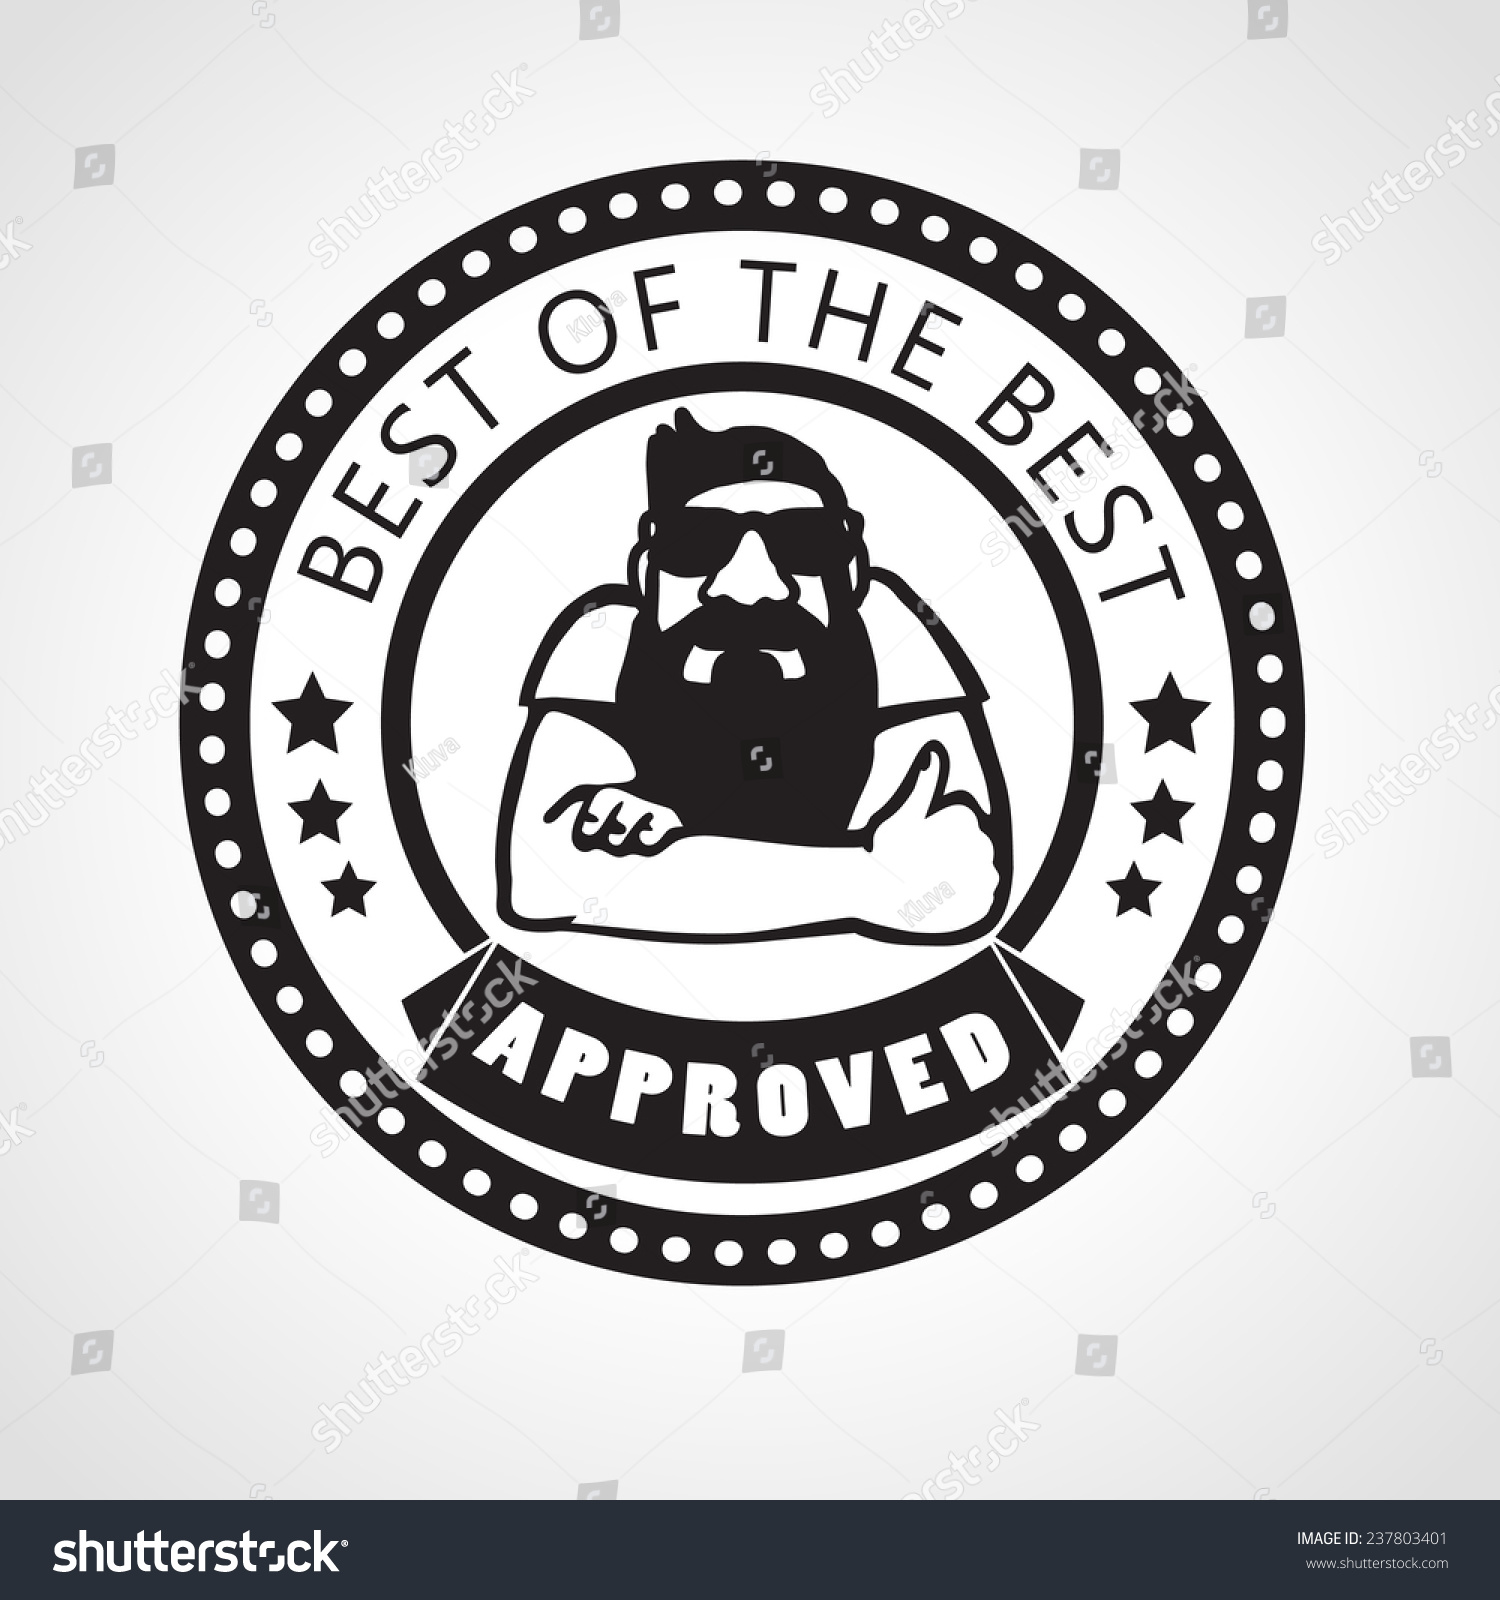 Vector approved stamp best of the best label with beard man approving with thumb up